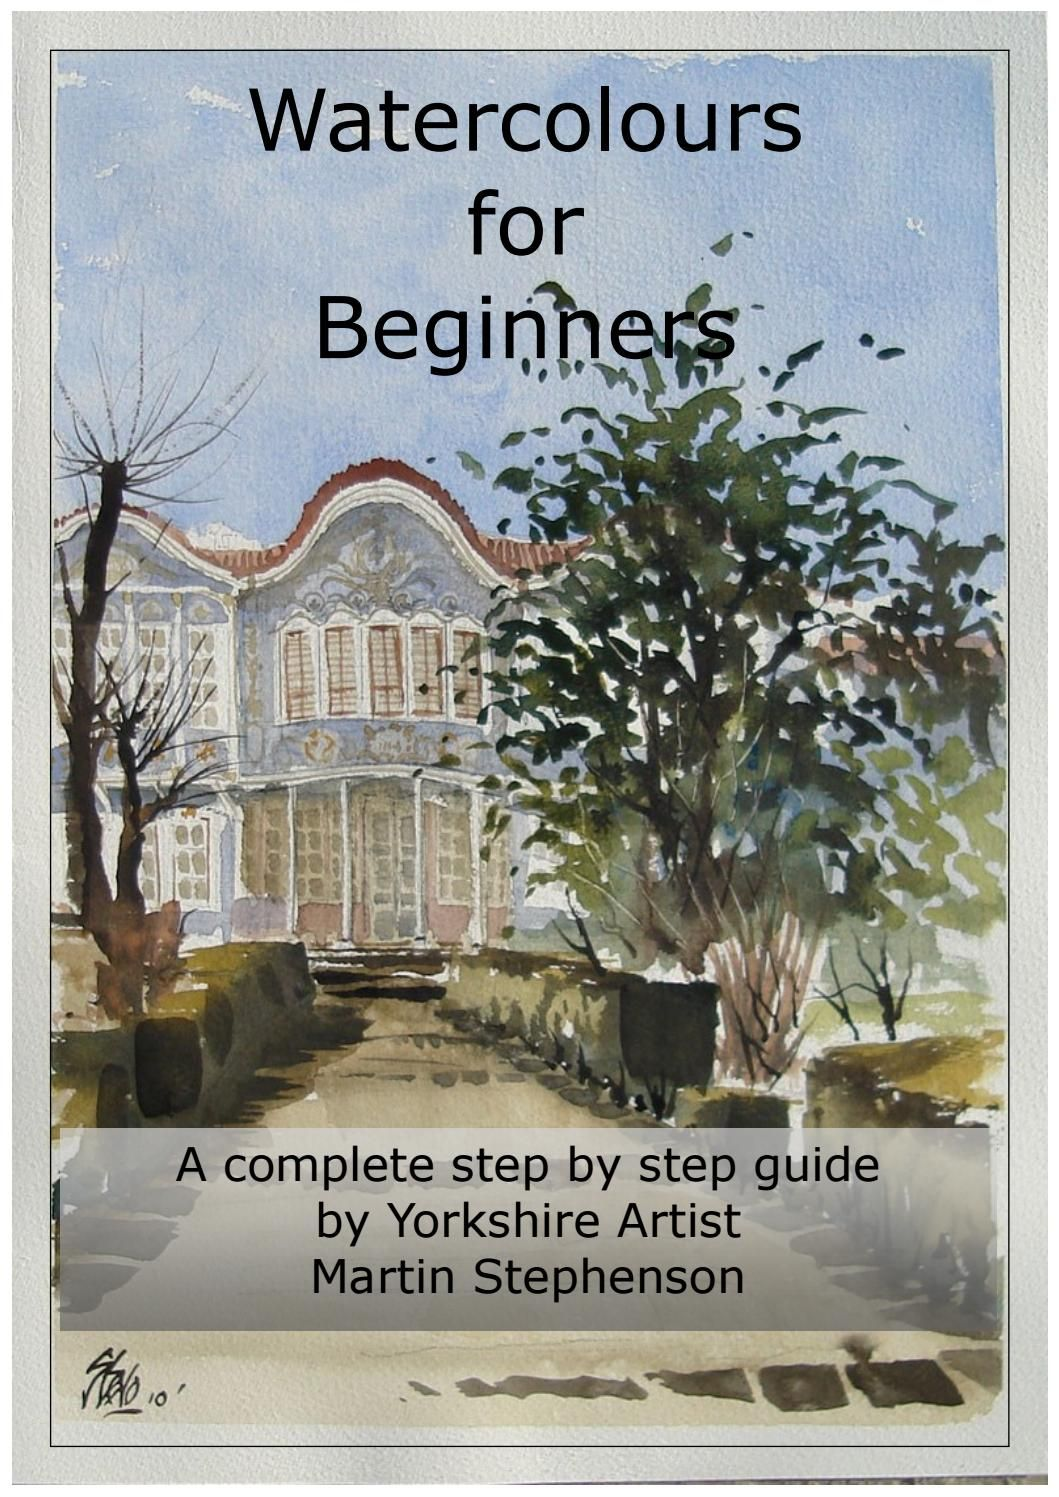 Watercolor books for beginners - Watercolours For Beginners E Book 157 Pages Copy Watercolours For Beginners By English Landscape Artist Martin Stephenson